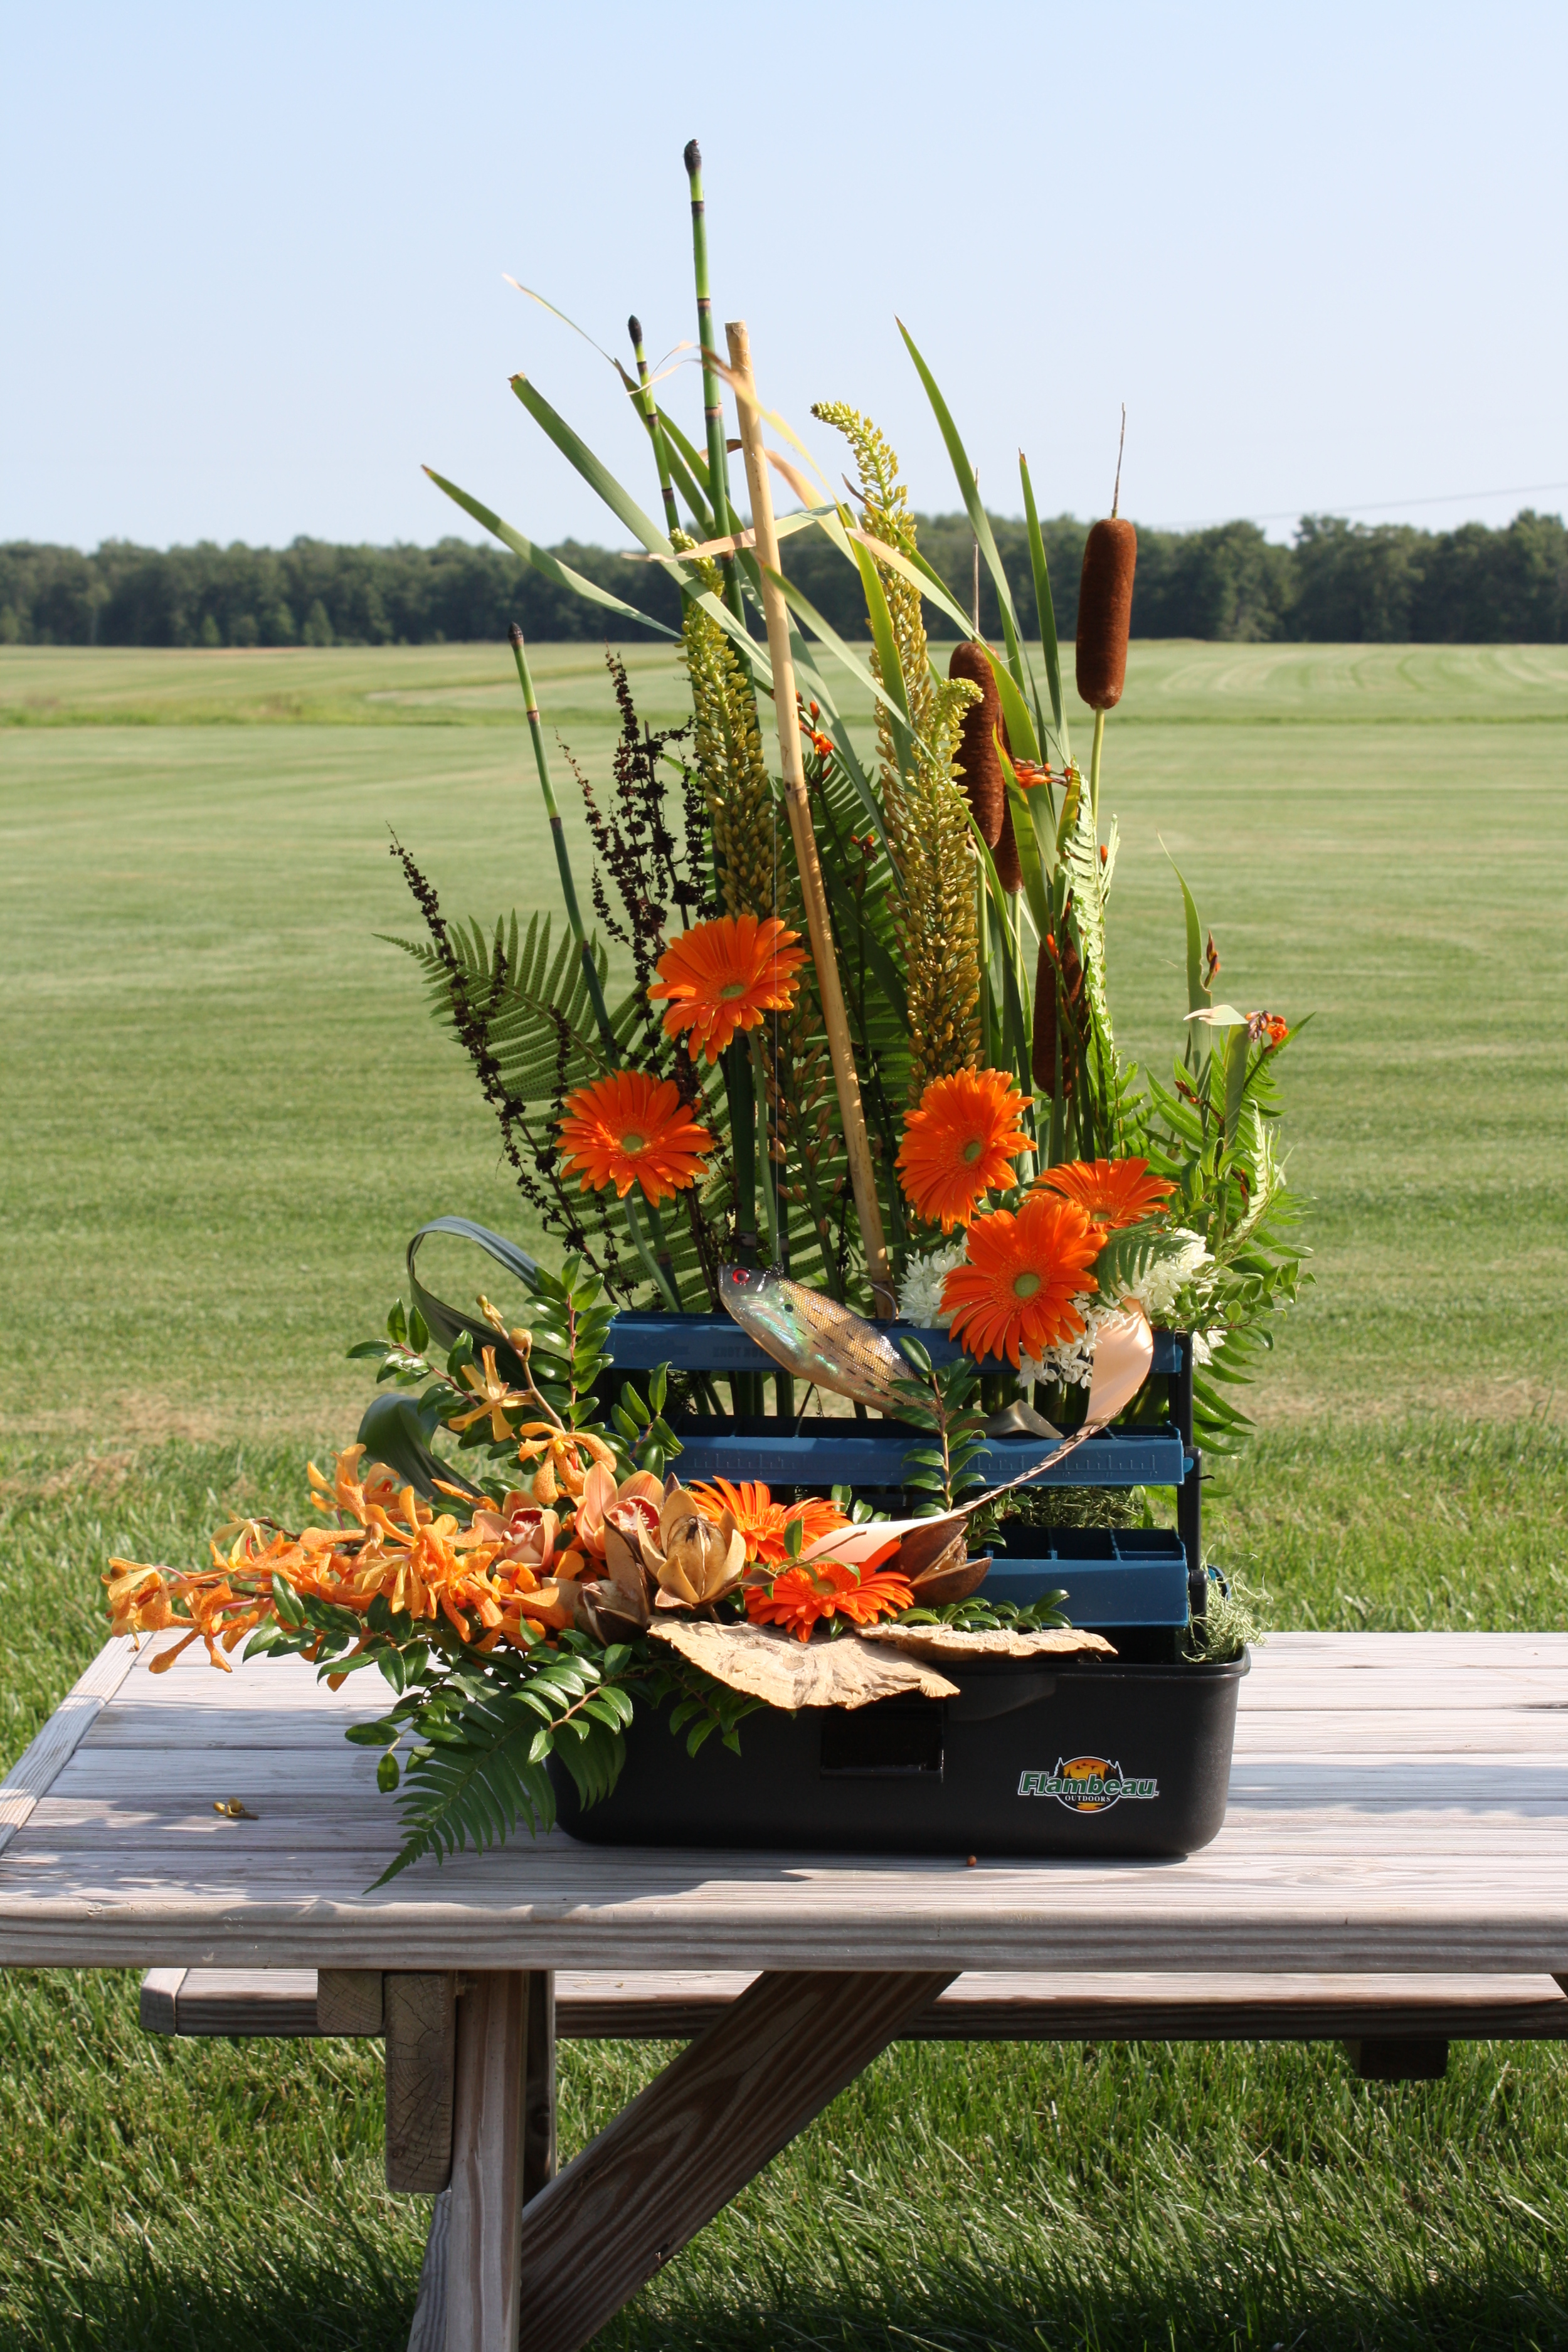 A Garden Party Florist, Sympathy Work, Fishing, Tackle Box